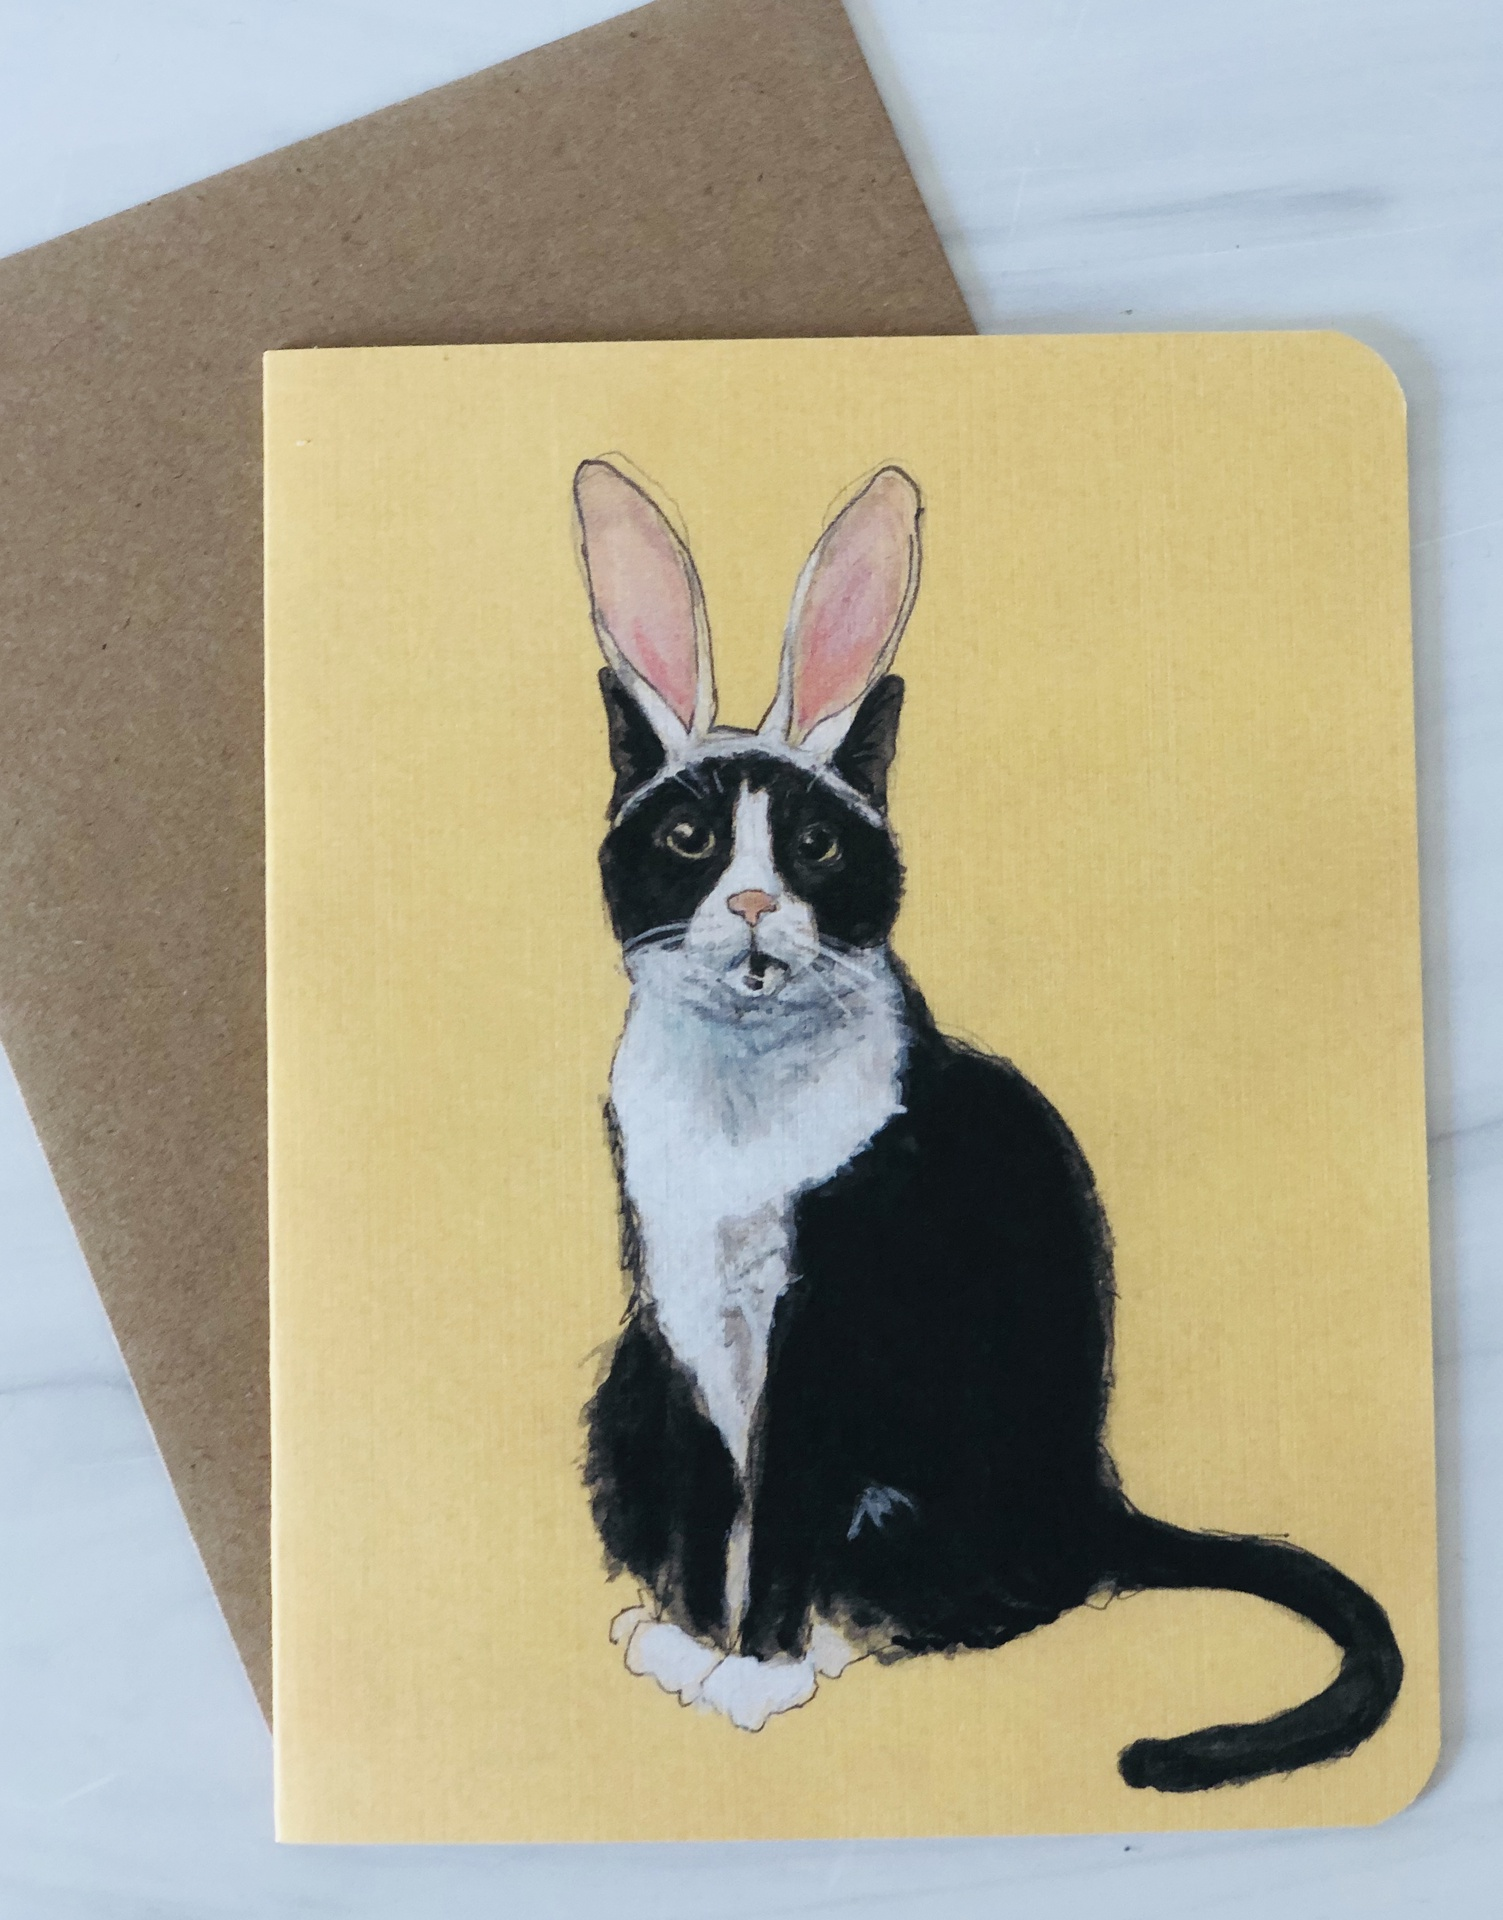 Bunny Cat, Blank Greeting Card